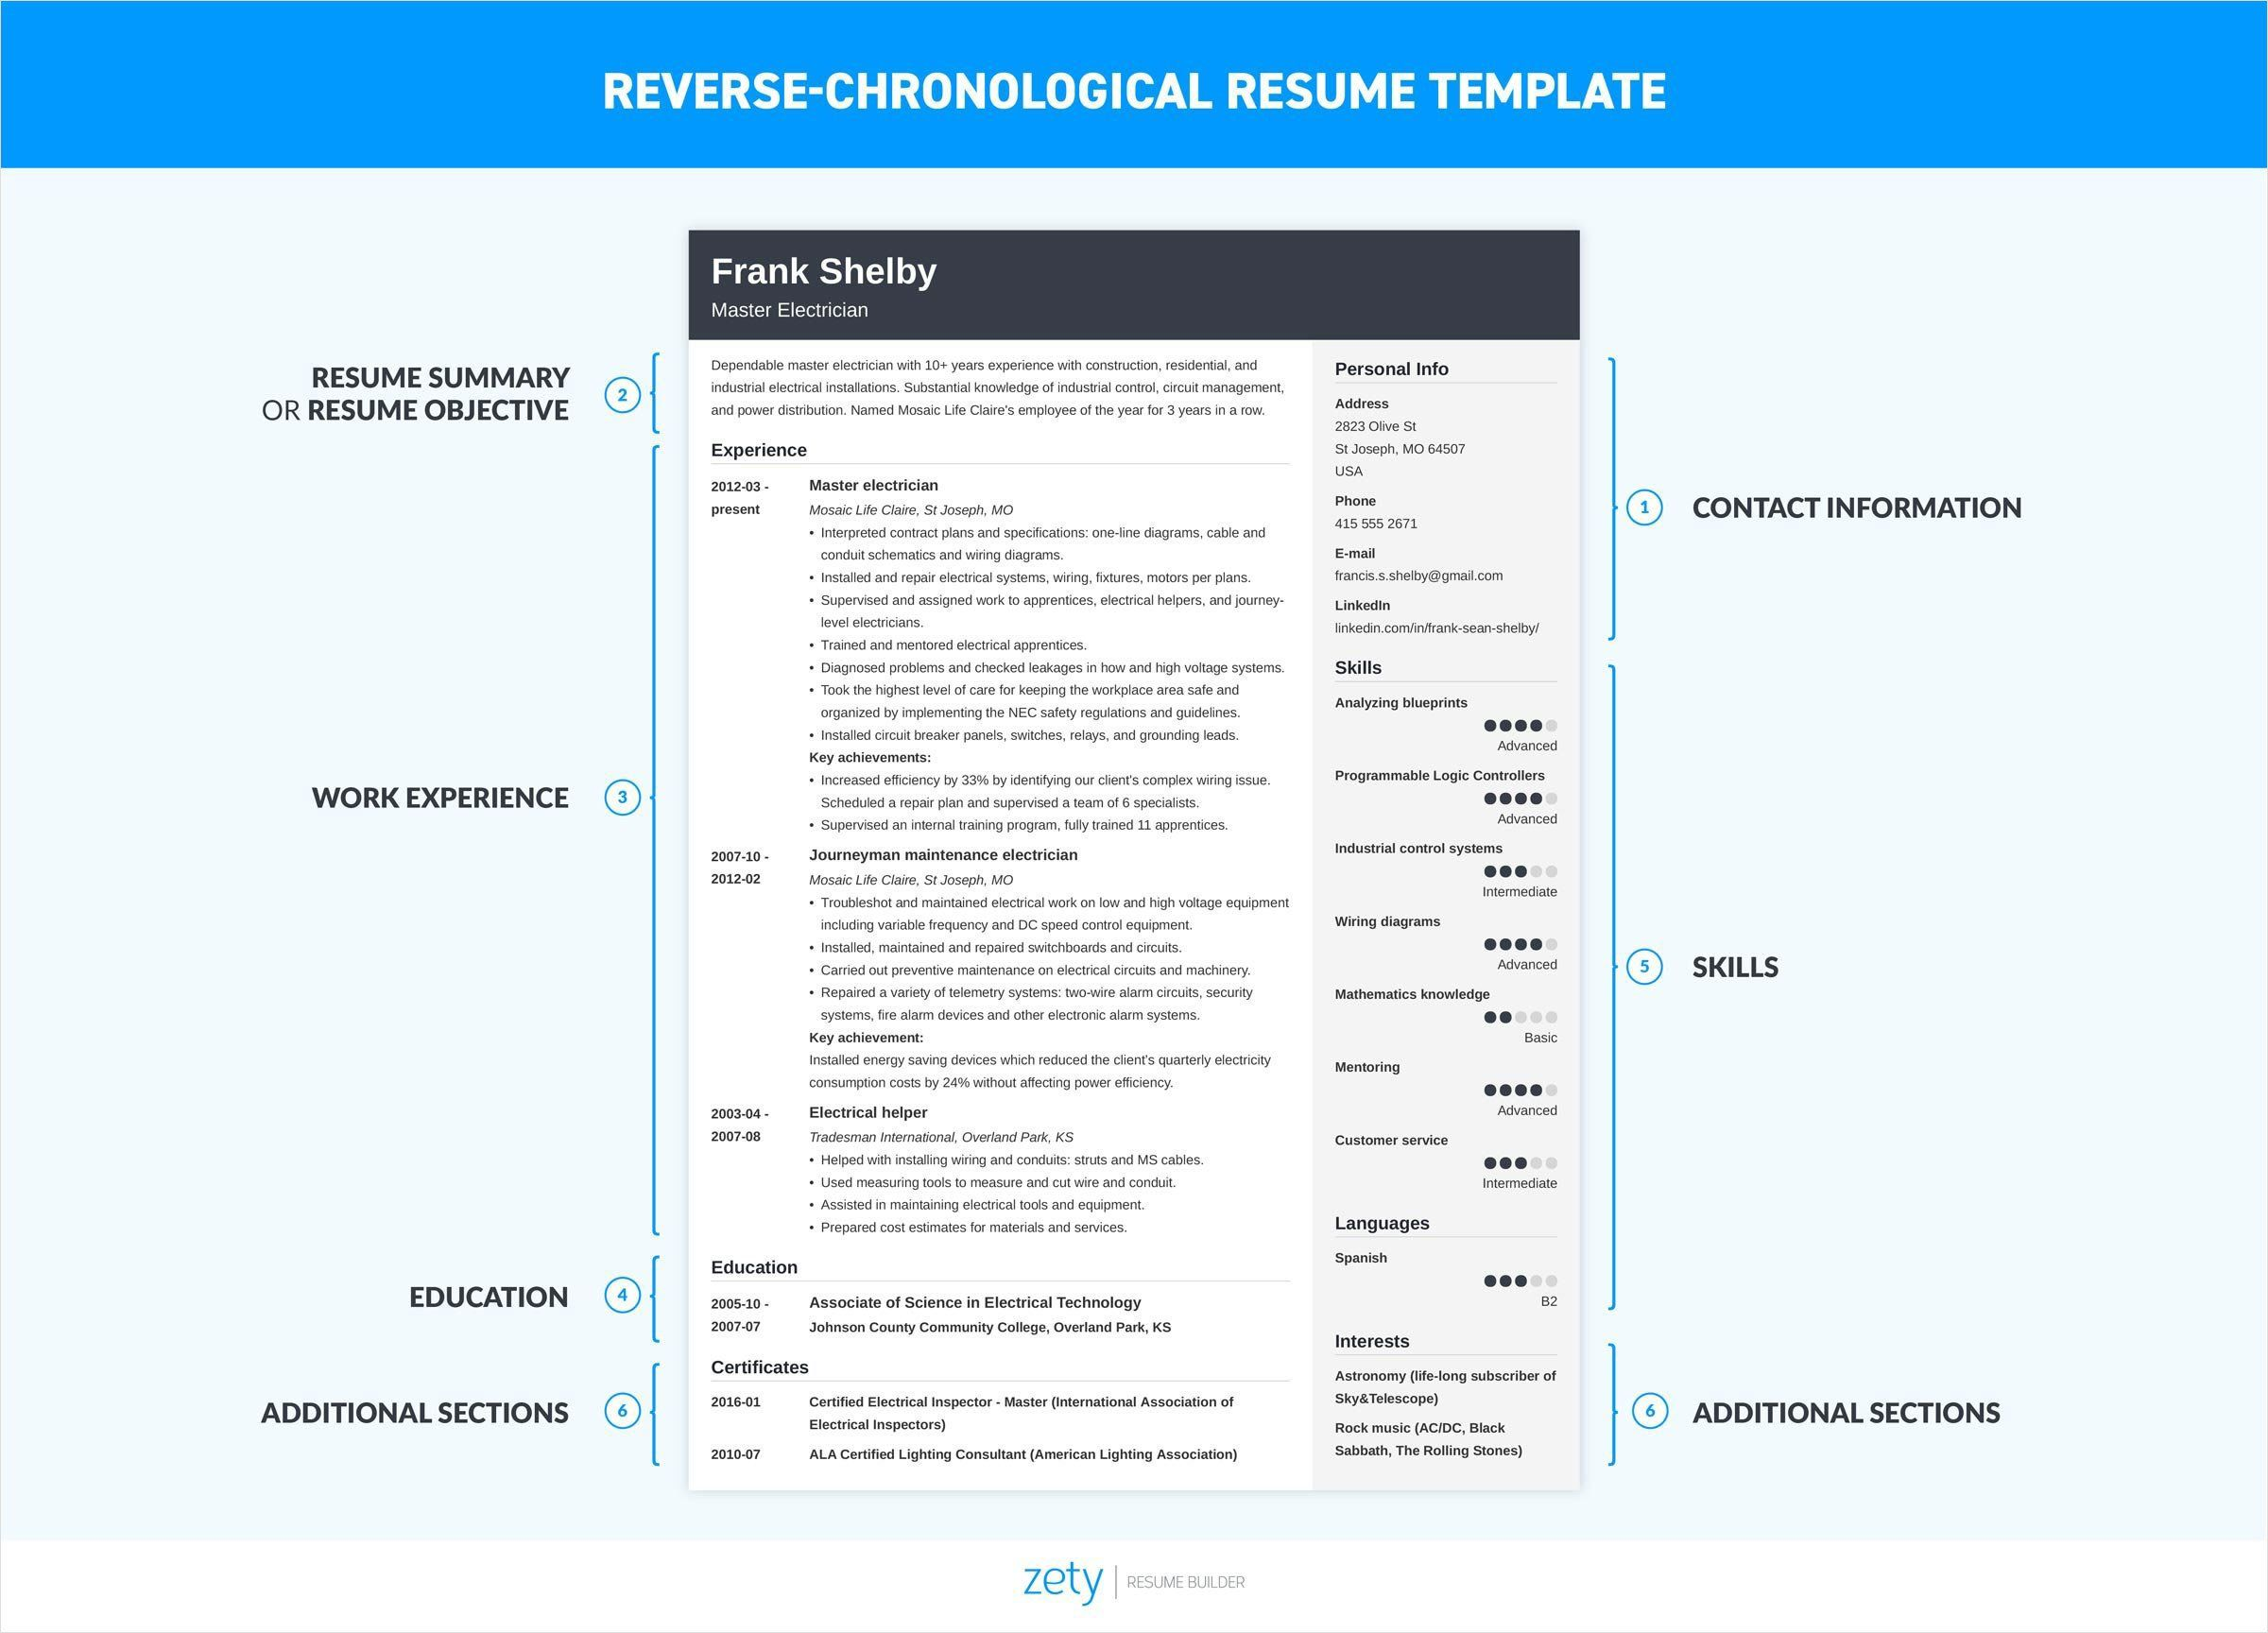 The Chronological Resume Is A Traditional Resume Format Emphasizes Your Duties Experienc Chronological Resume Chronological Resume Template How To Make Resume